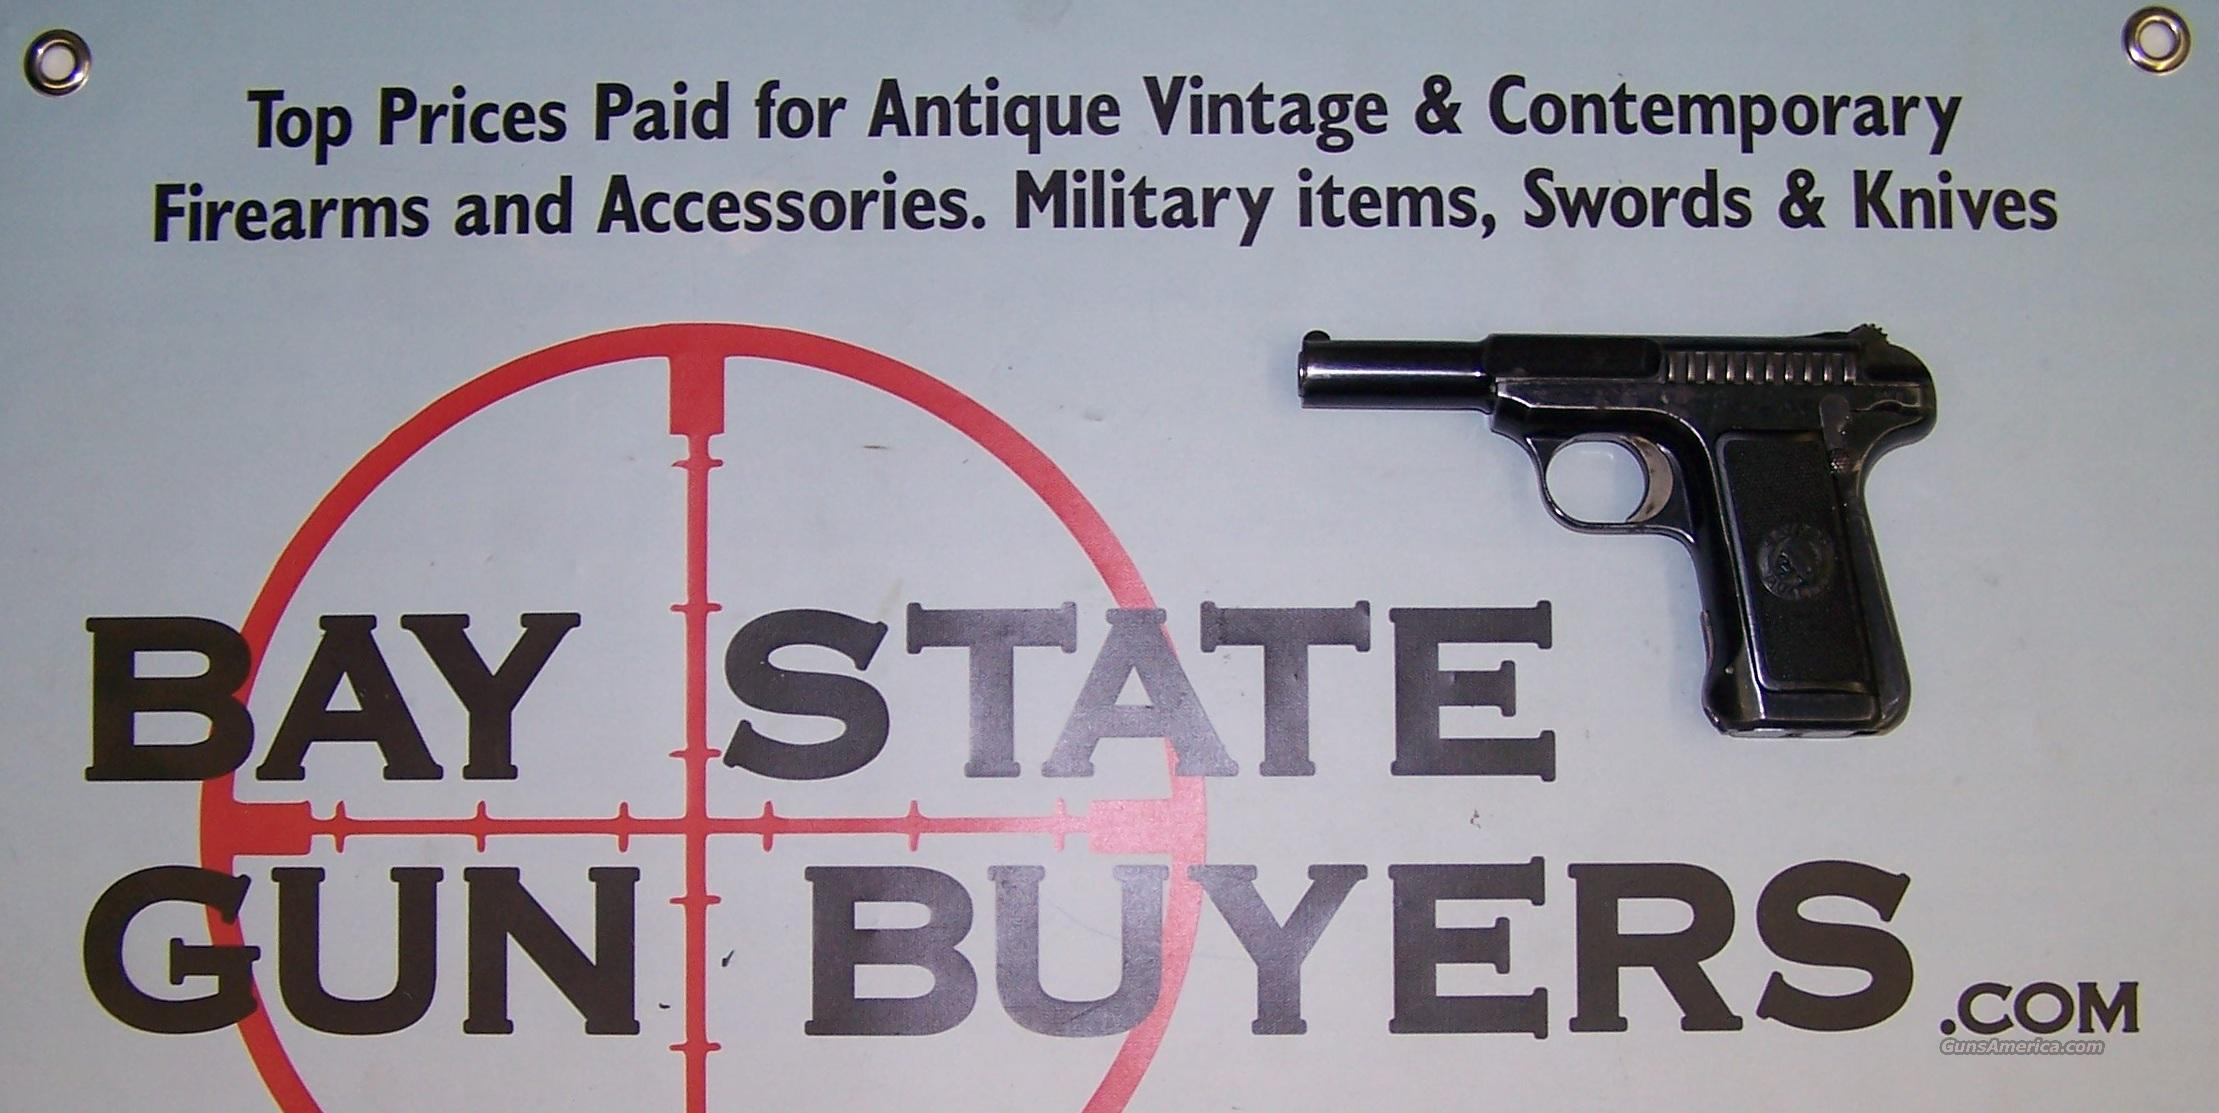 Savage Model 1907 pistol .32 ACP manufactured 1912   Guns > Pistols > Savage Pistols